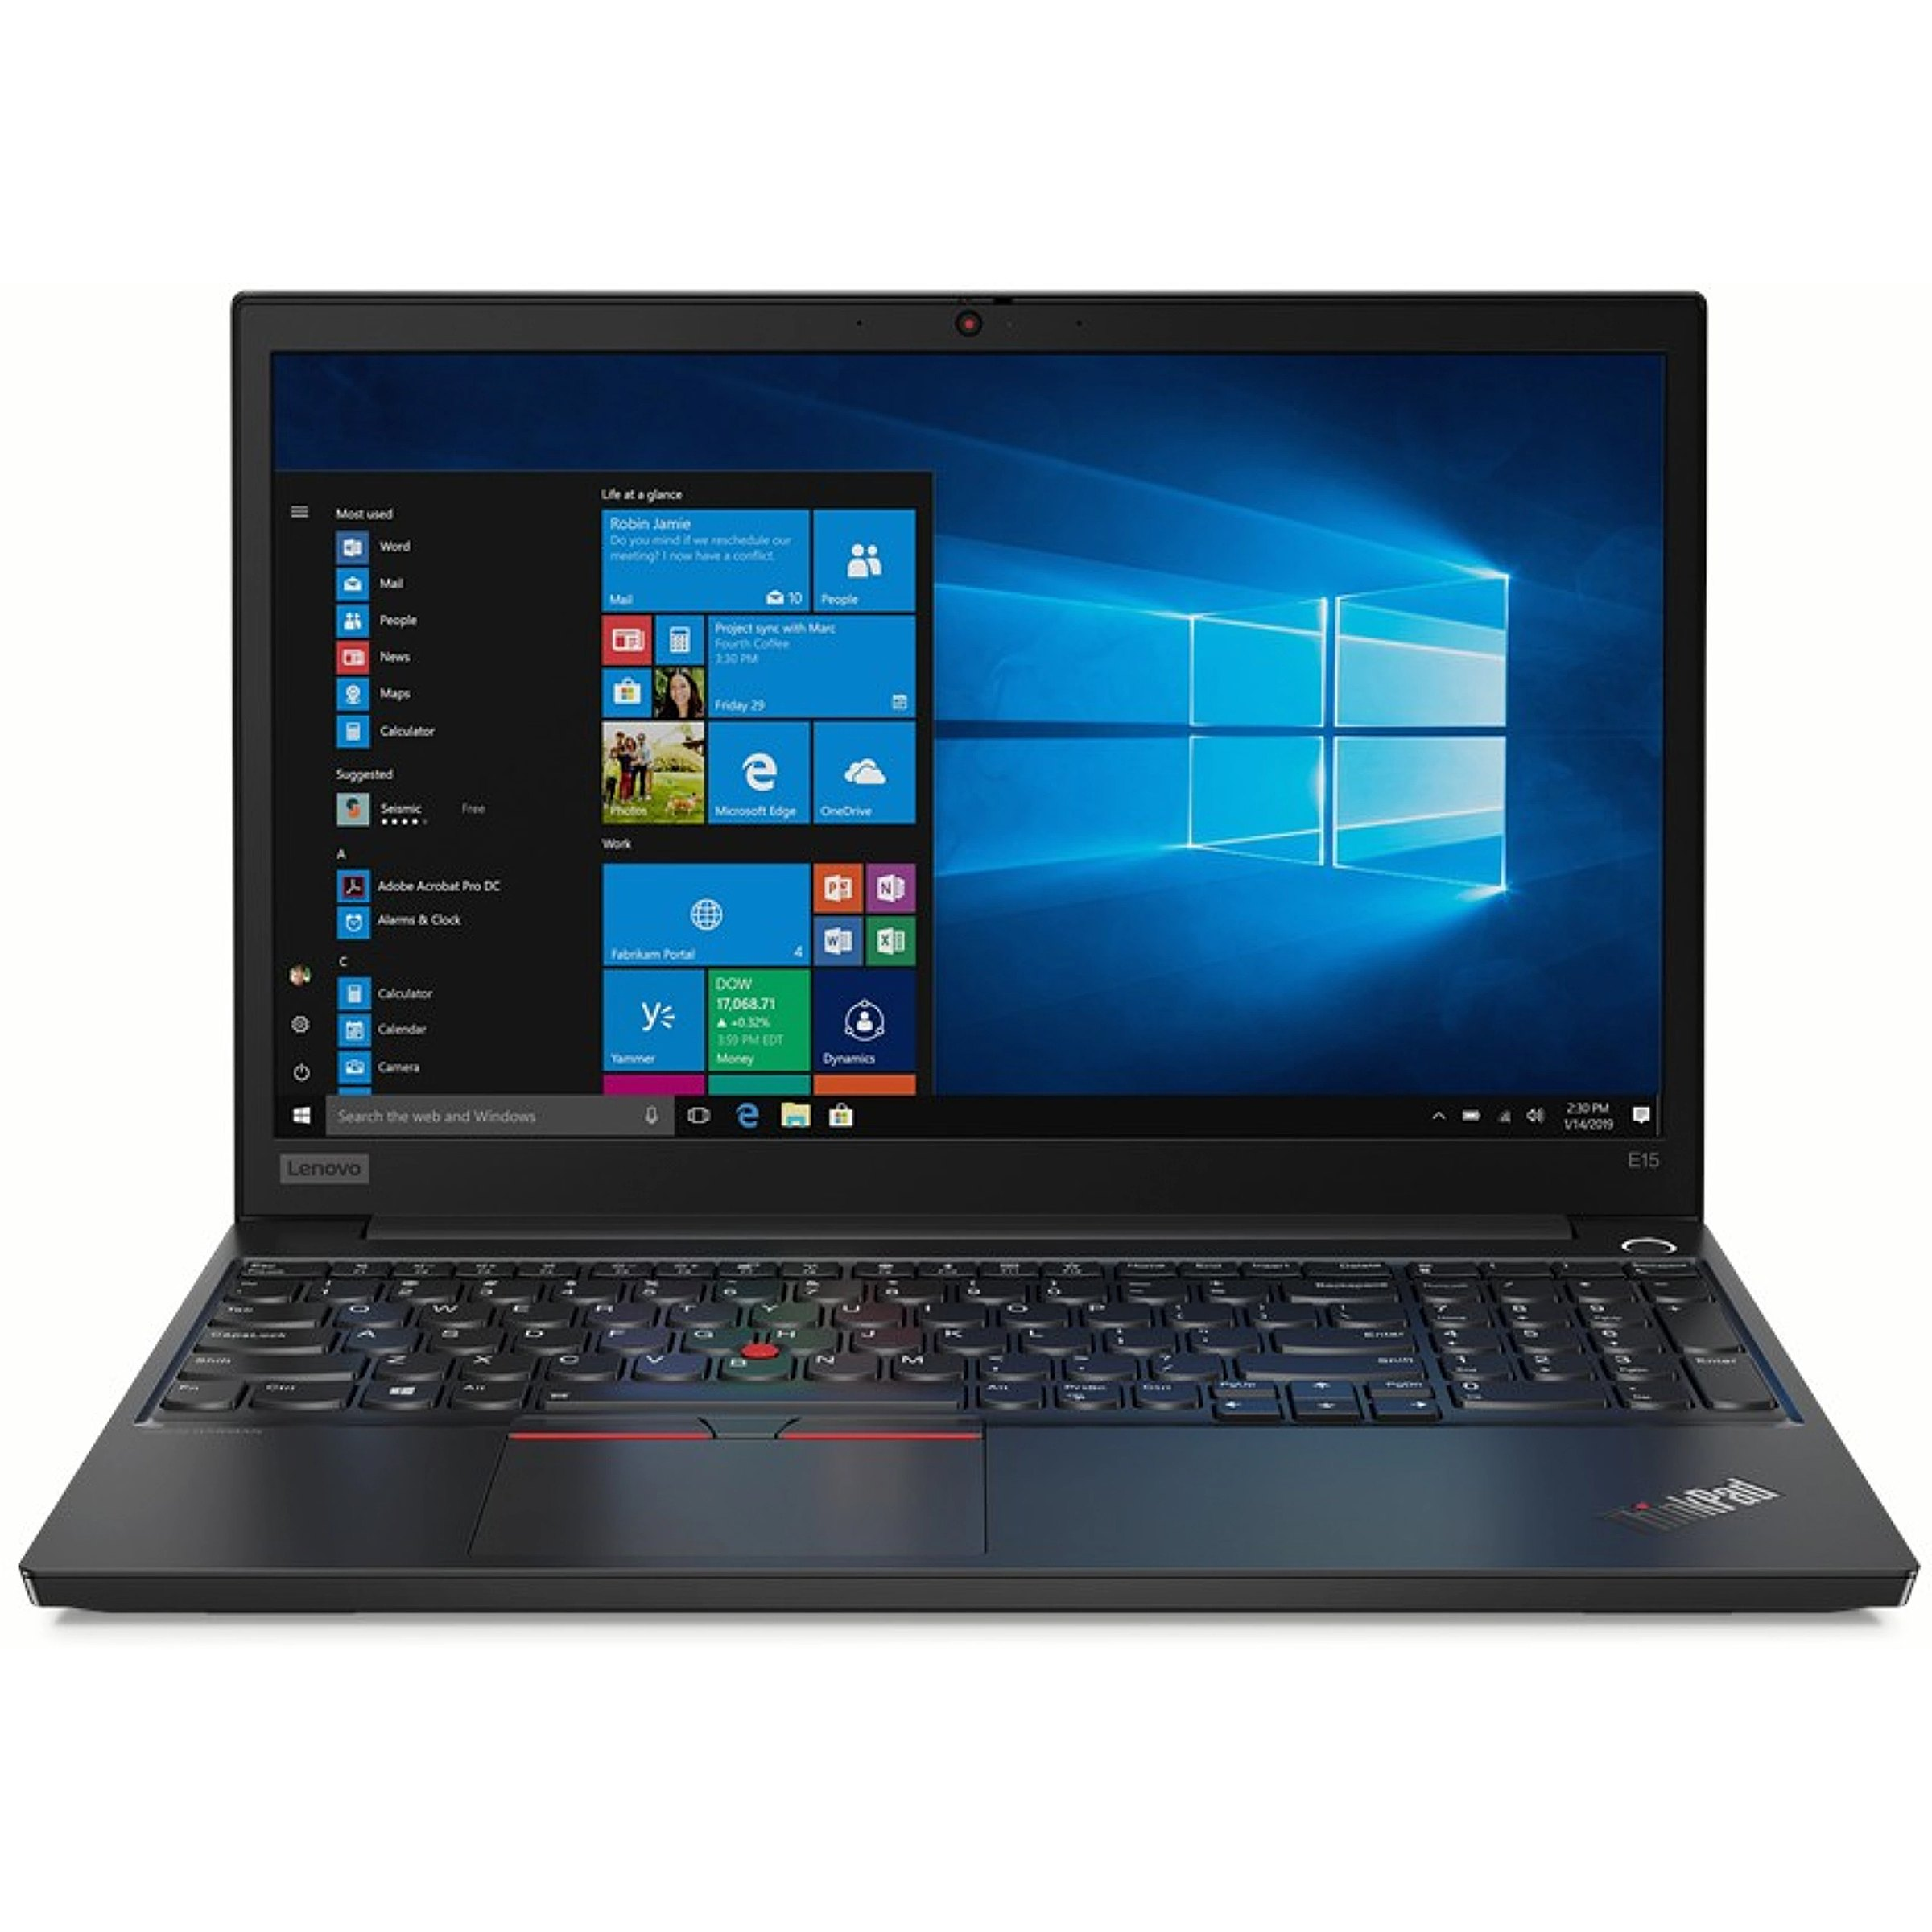 Lenovo ThinkPad E15 Black, 15.6